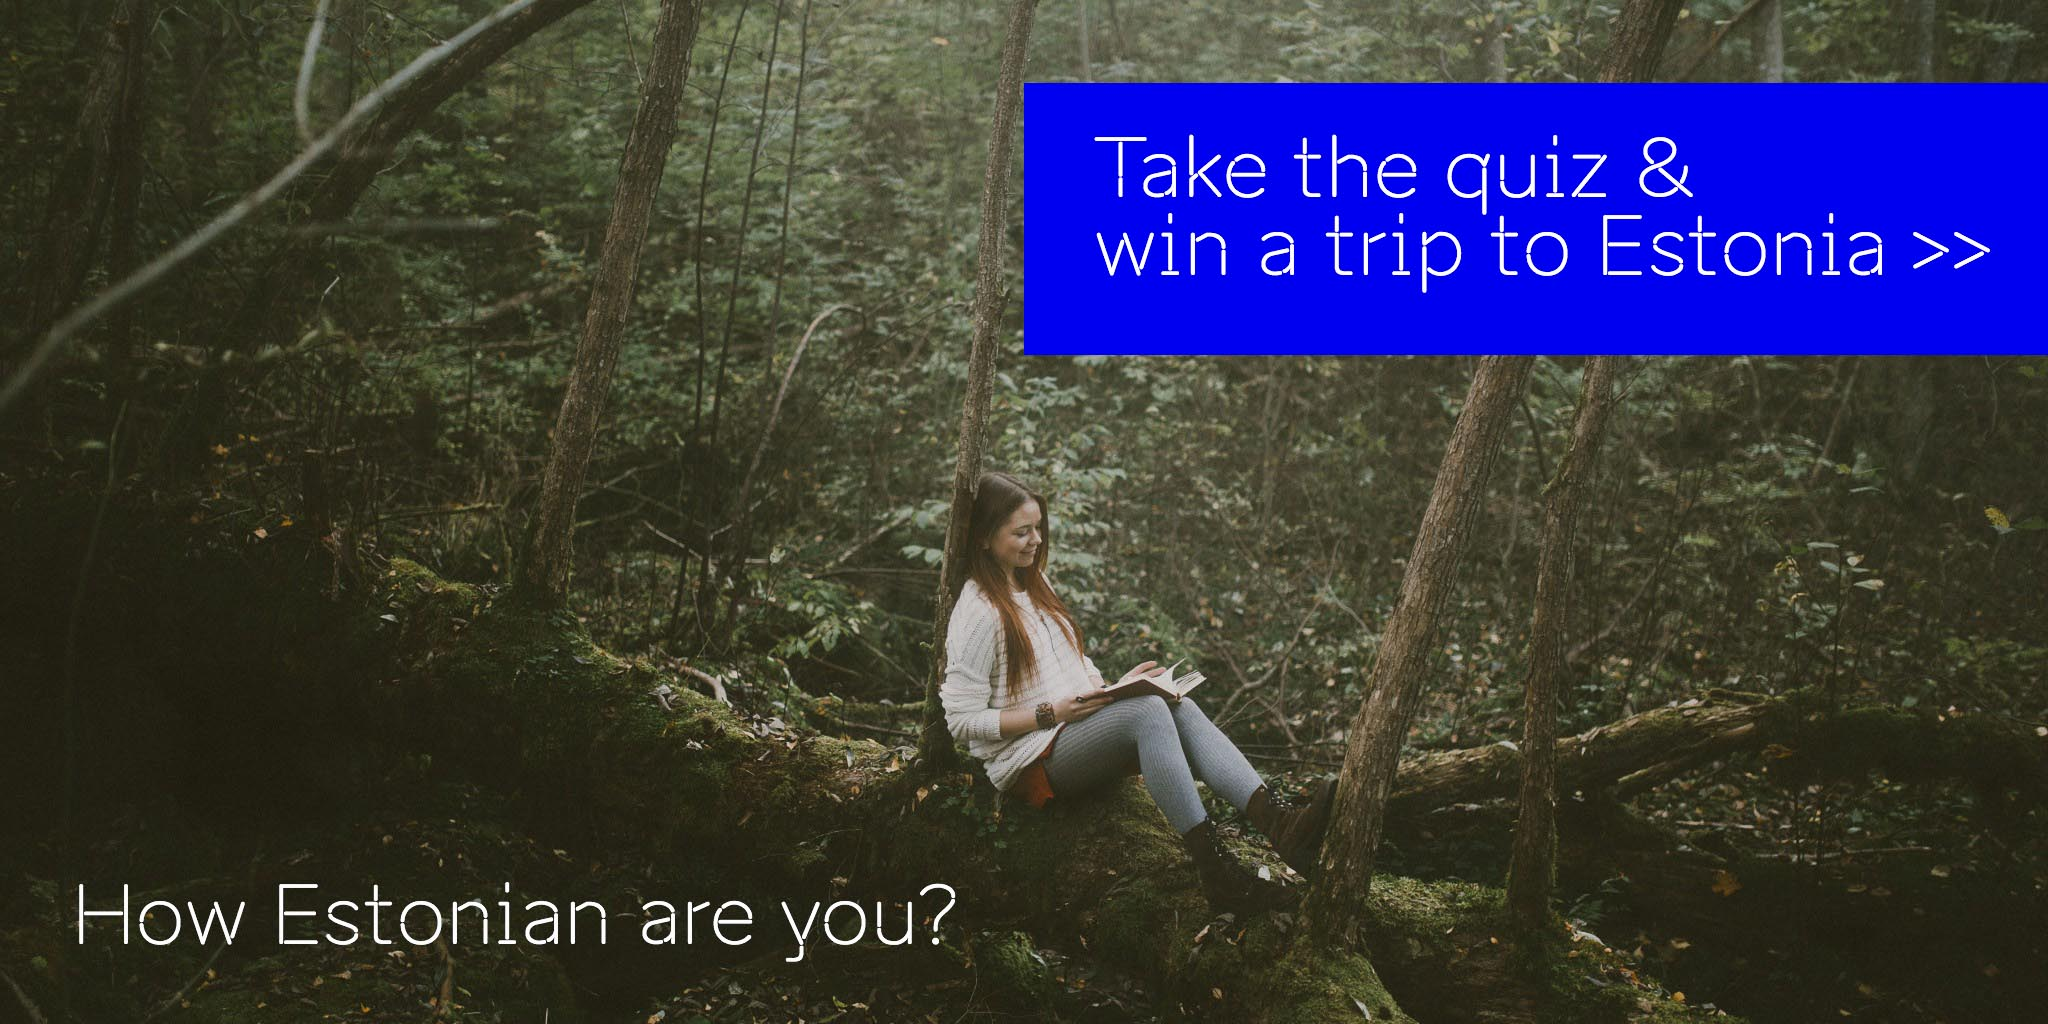 Take the quiz and win a trip to Estonia